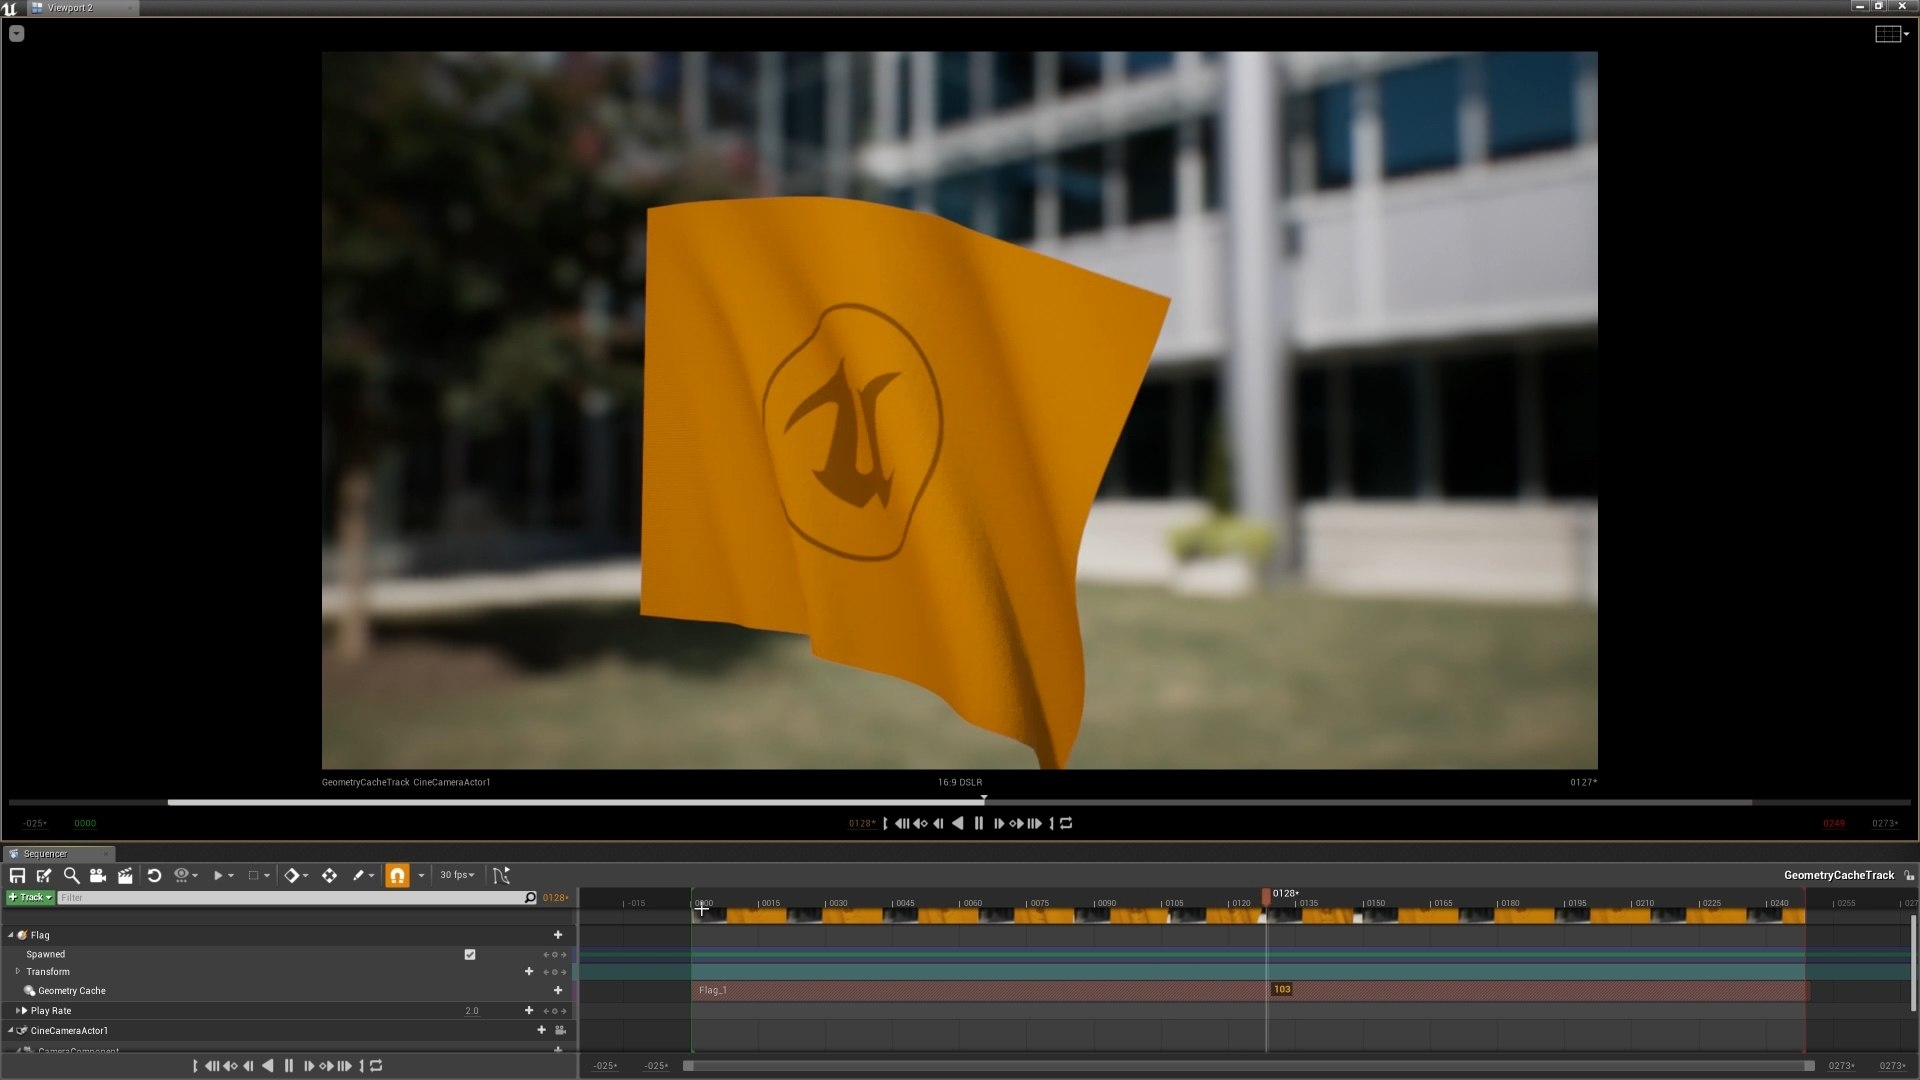 Epic Games Releases Unreal Engine 4 21 | Animation World Network